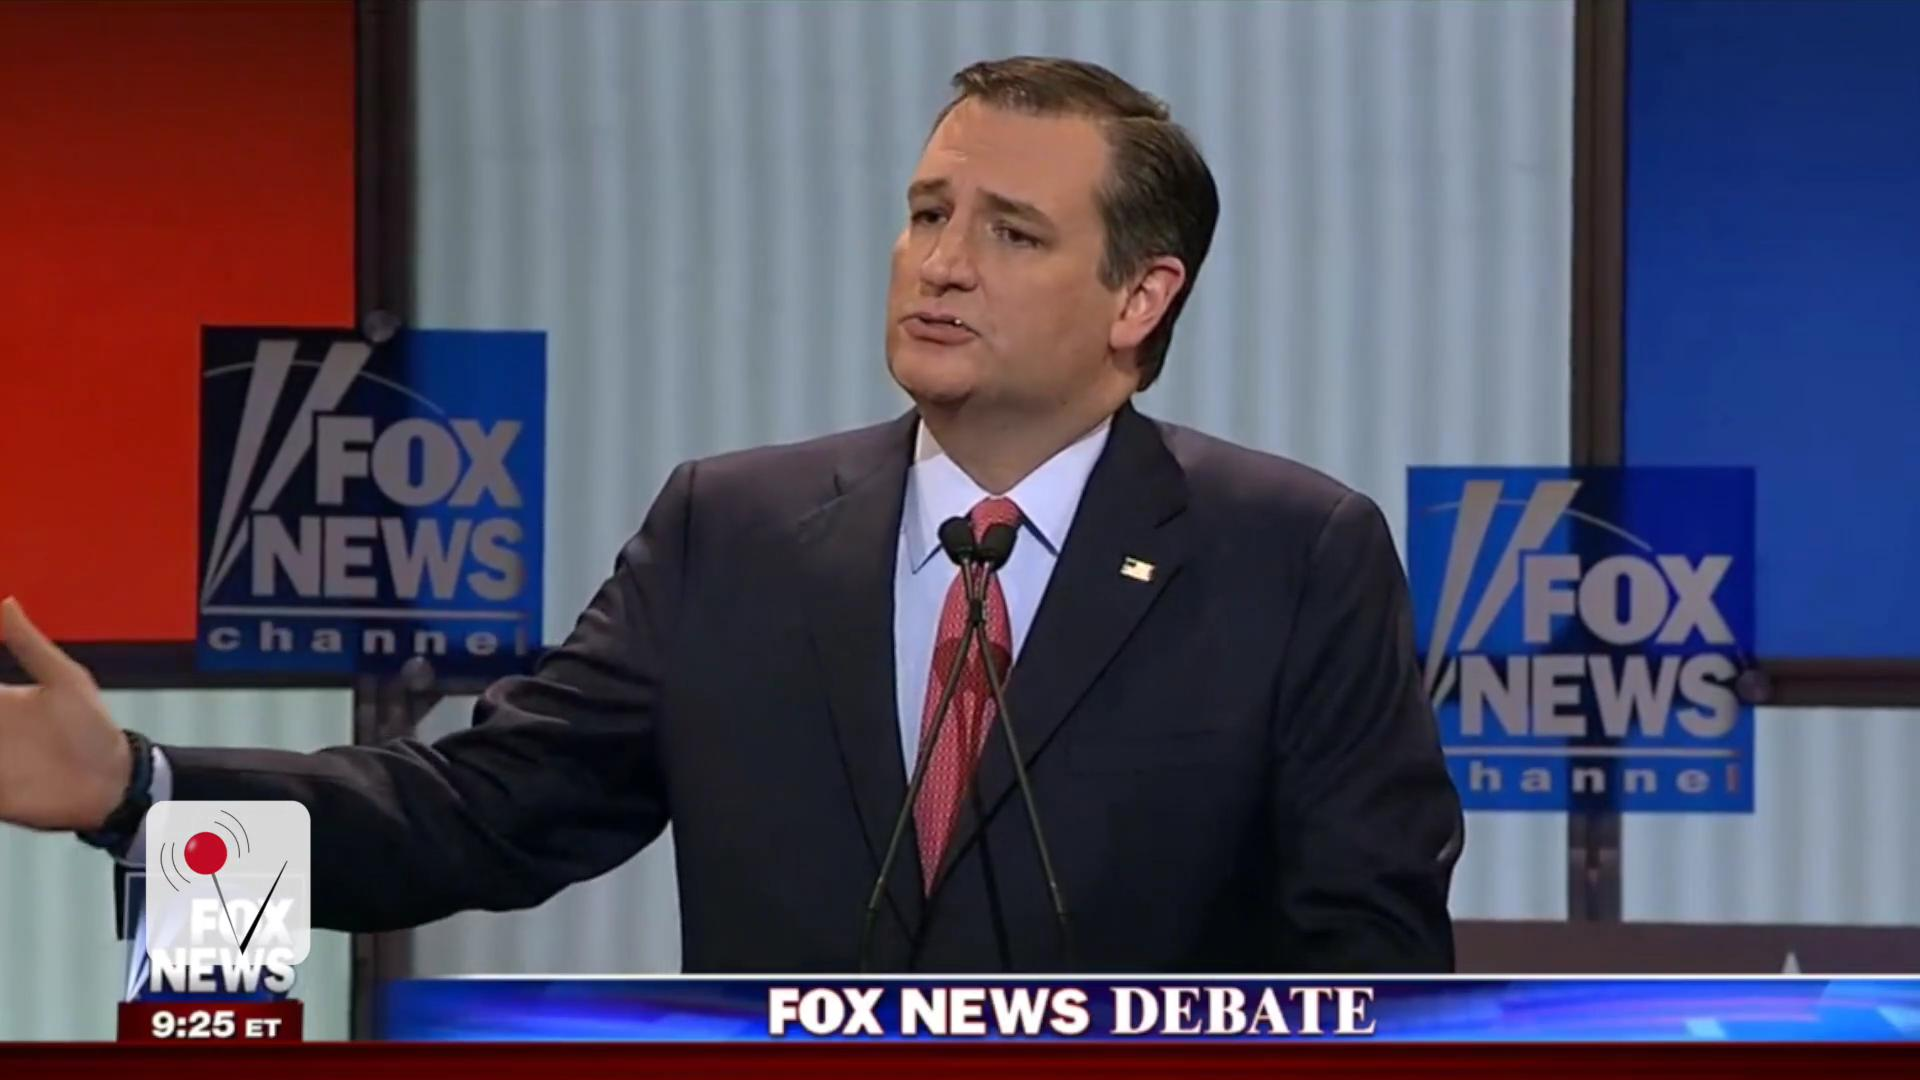 Did Ted Cruz Eat a Booger on National TV?